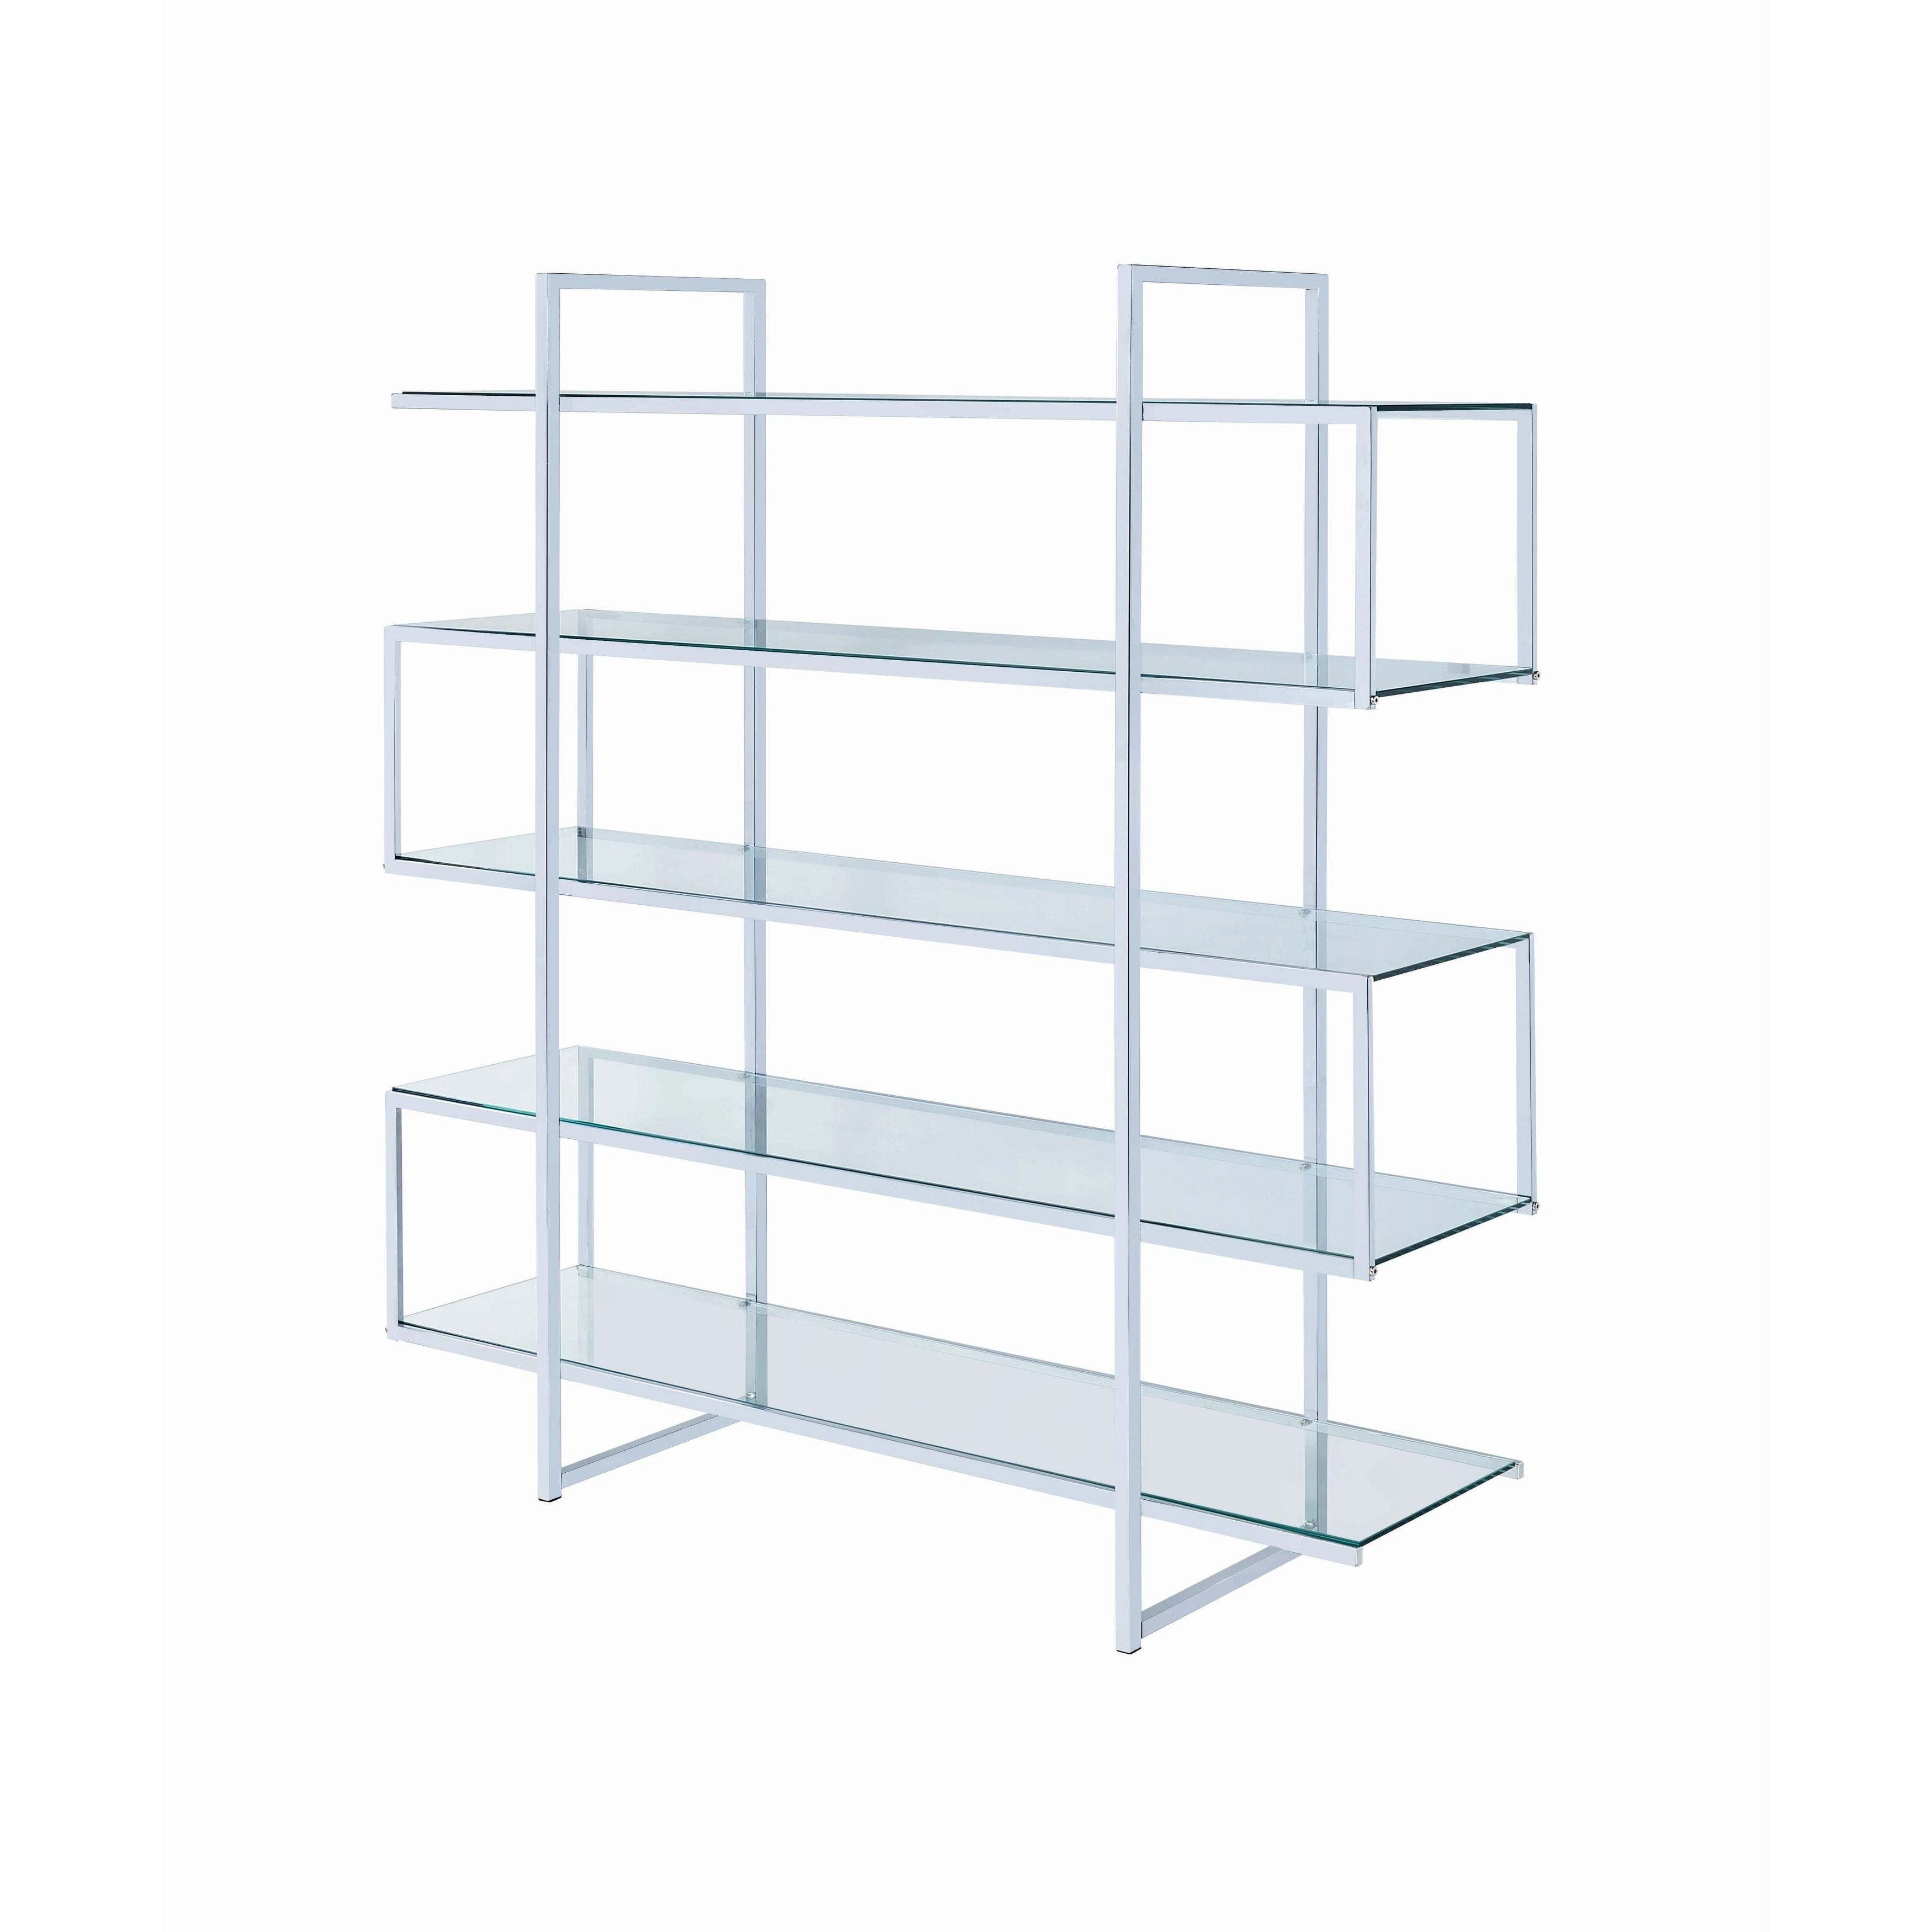 on wood by metal pin pinterest shelf bookcase bookcases shelving glass and design shelves